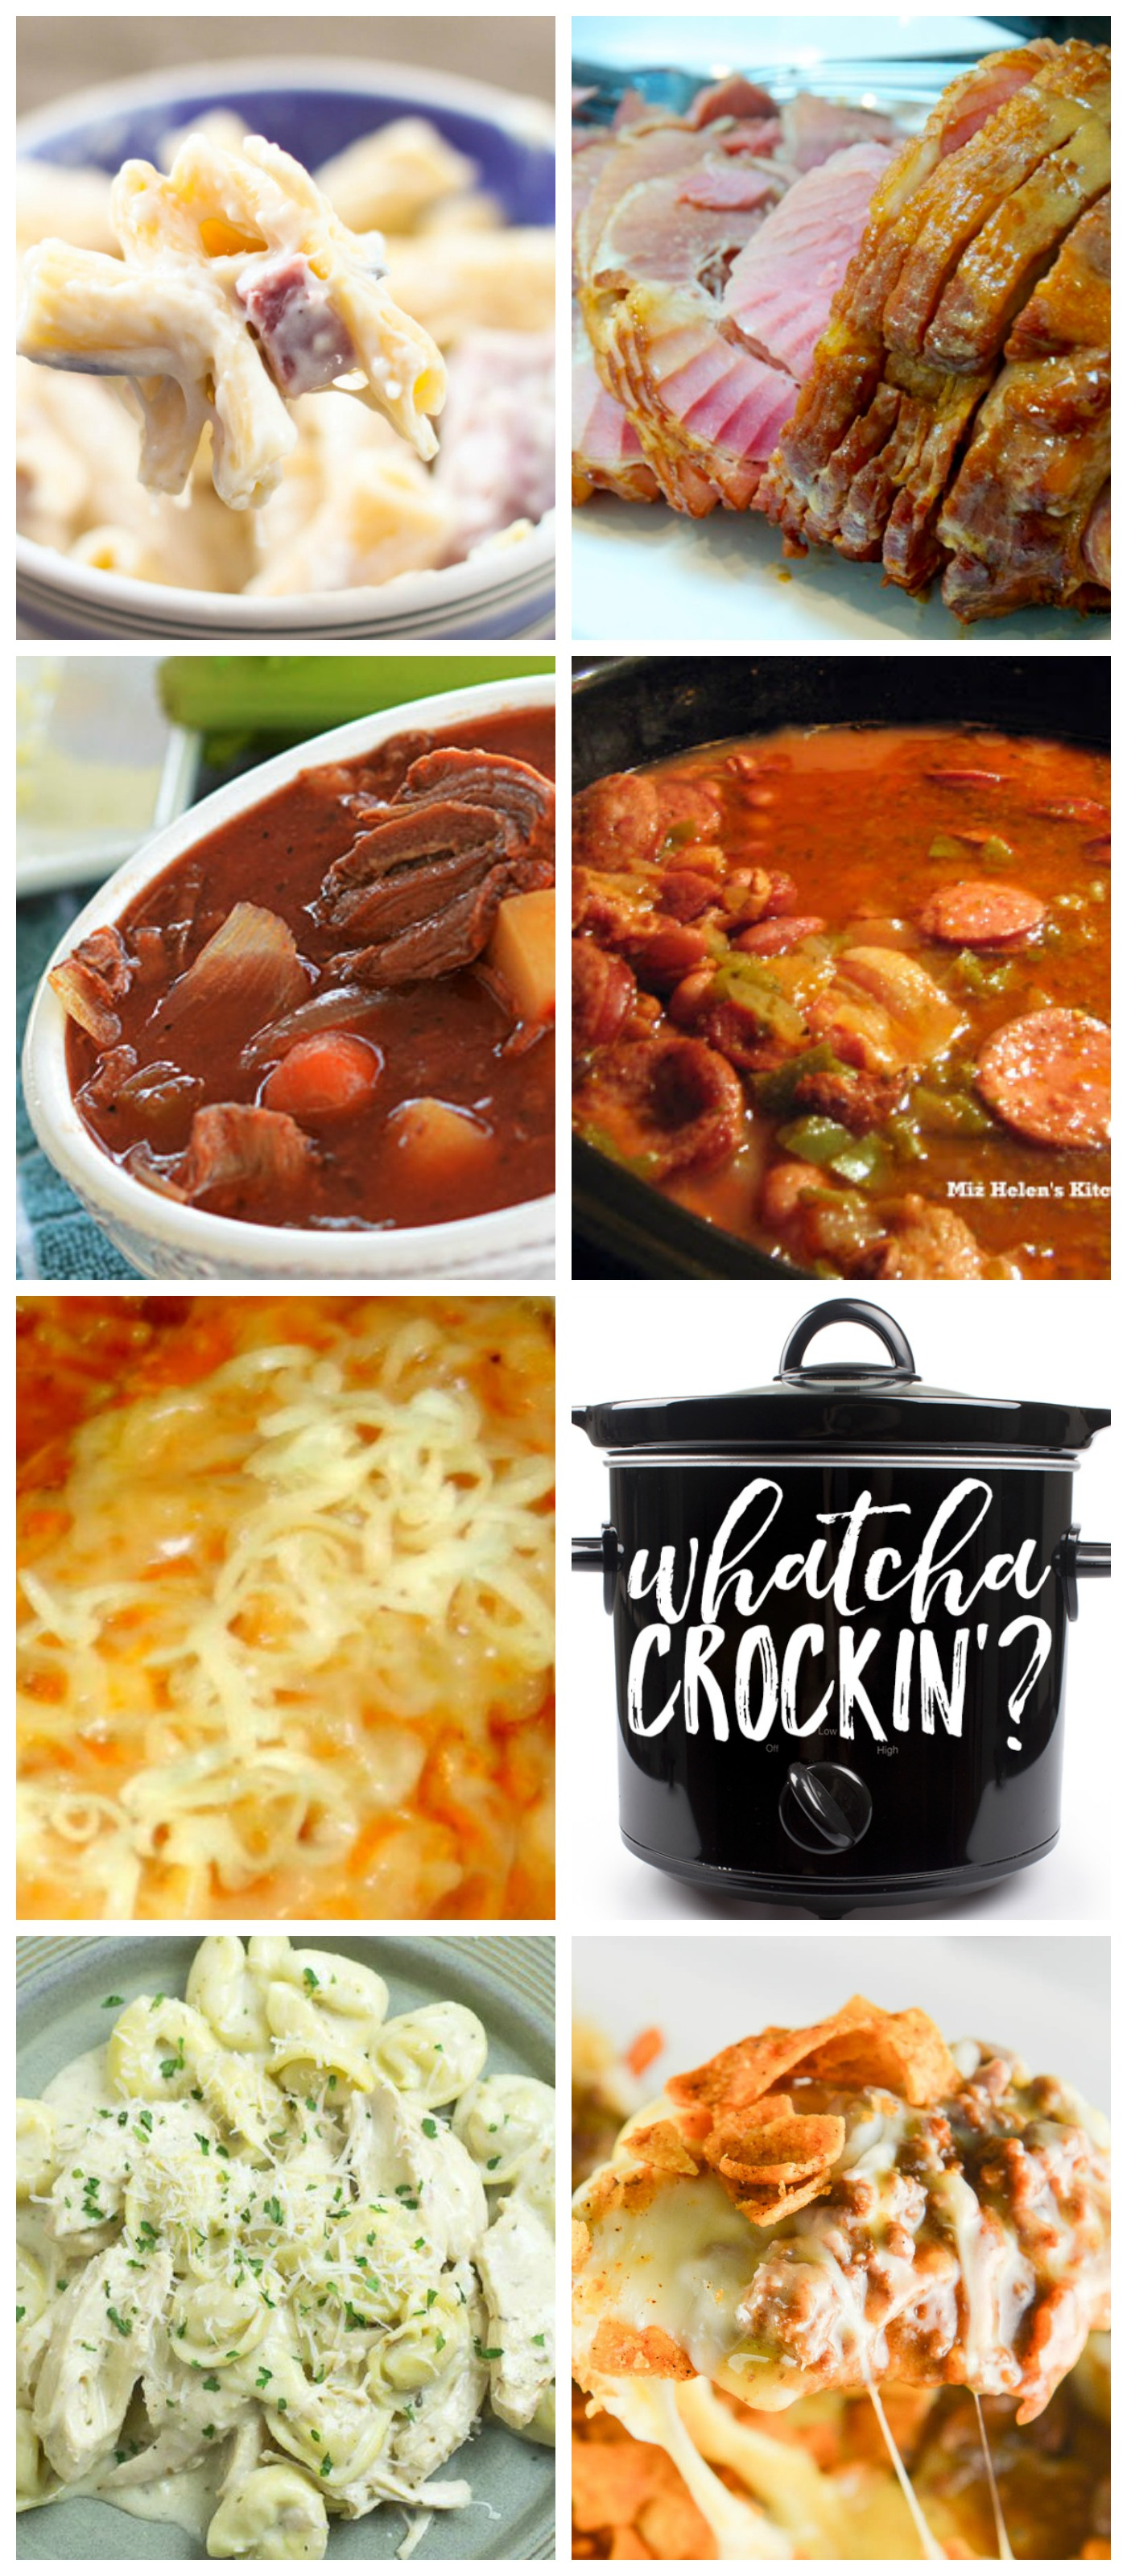 This week's Whatcha Crockin' crock pot recipes include Slow Cooker Cajun Red Beans and Rice, Ham and Cheese Pasta Bake, Slow Cooker Beef Stew, Crock Pot Chicken Alfredo Tortellini, Crock Pot Taco Bake, Crock Pot Garlic Honey Mustard Ham, Slow Cooked Spanish Chicken With Chorizo Spiced Rice and much more!